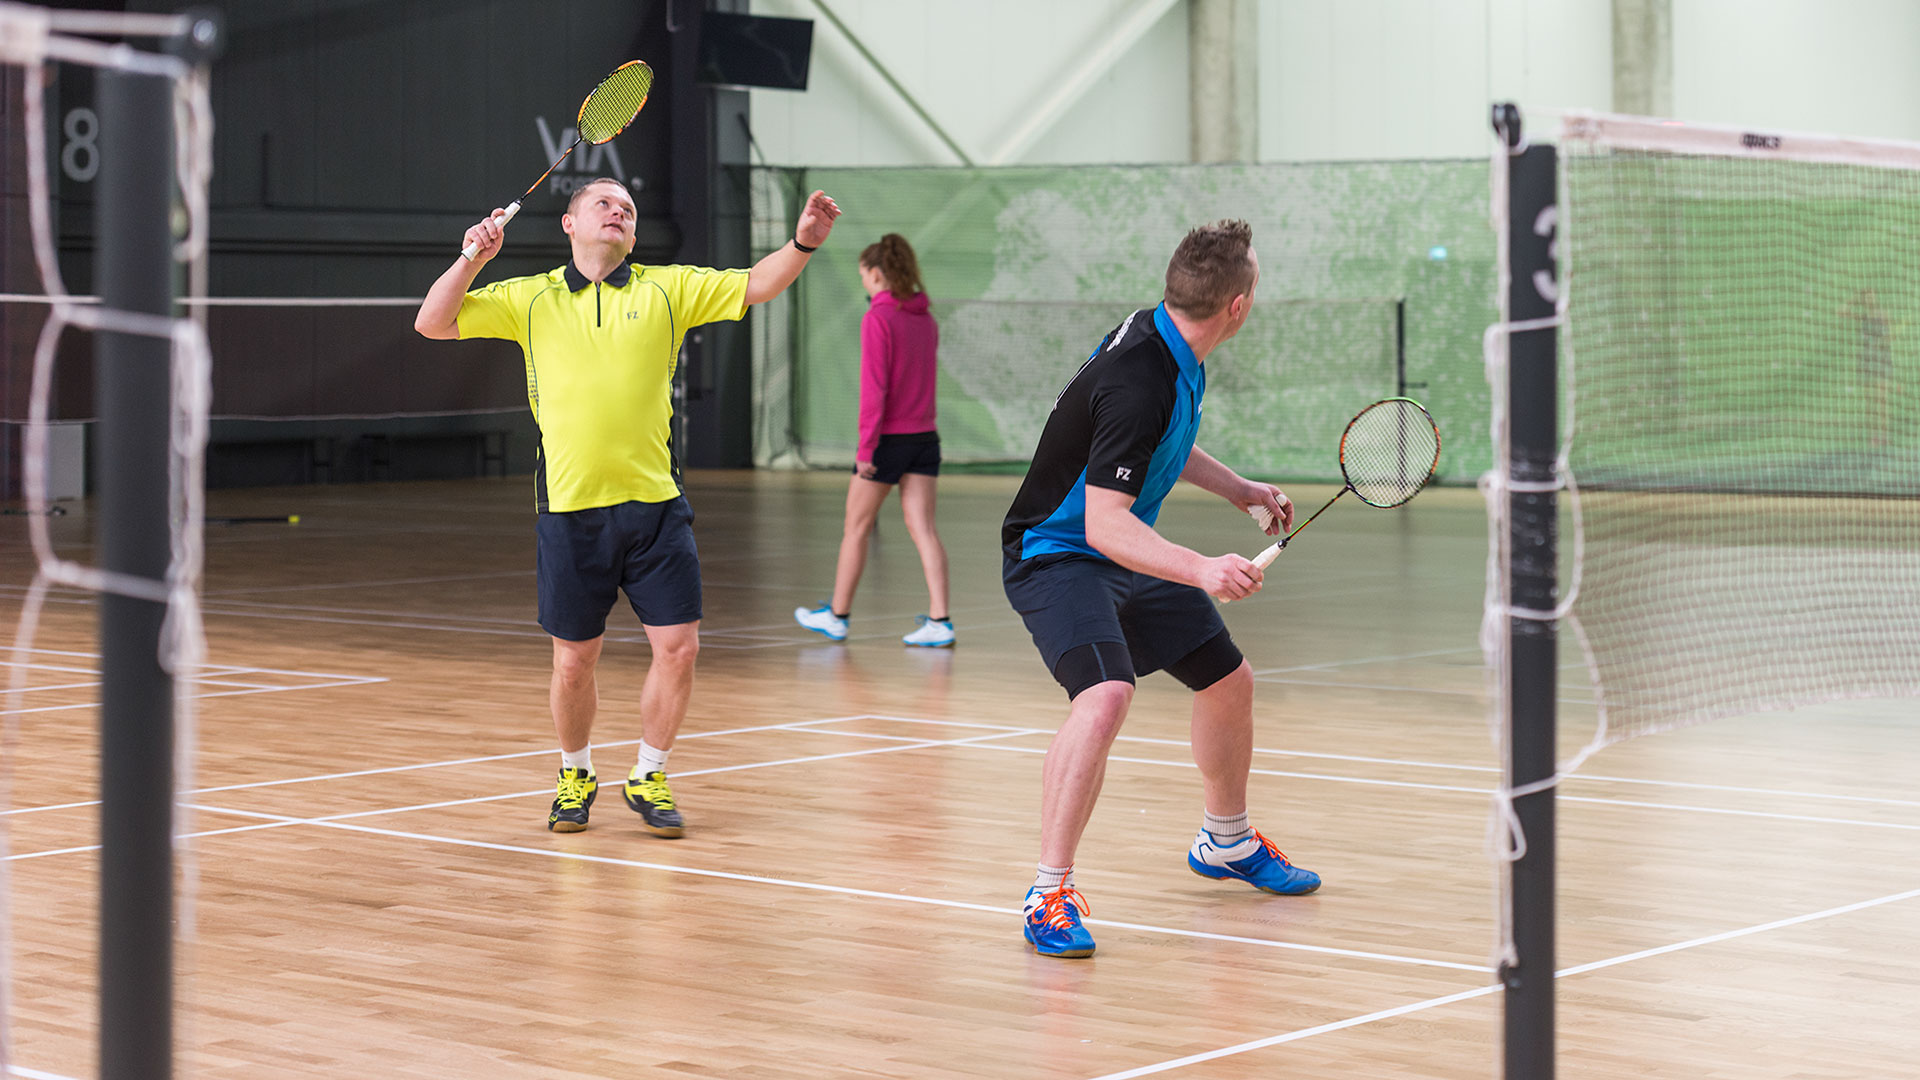 Capital Badminton Club (CBC)